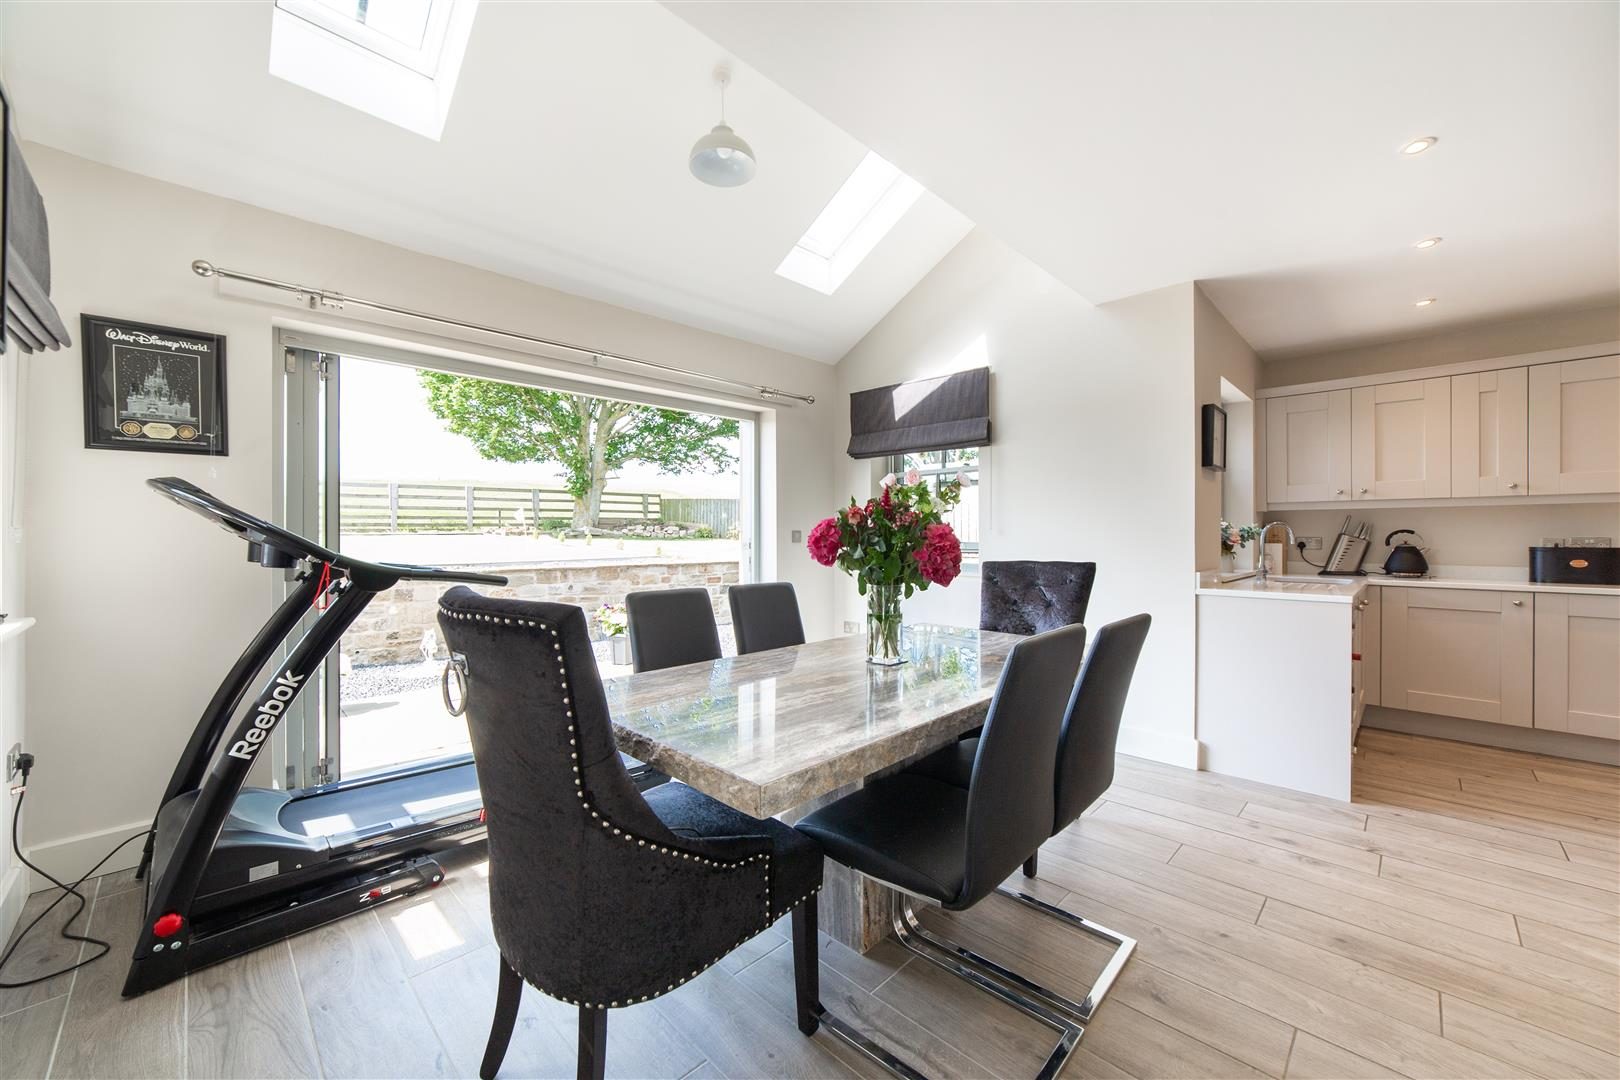 4 bed detached house for sale, Hexham 26